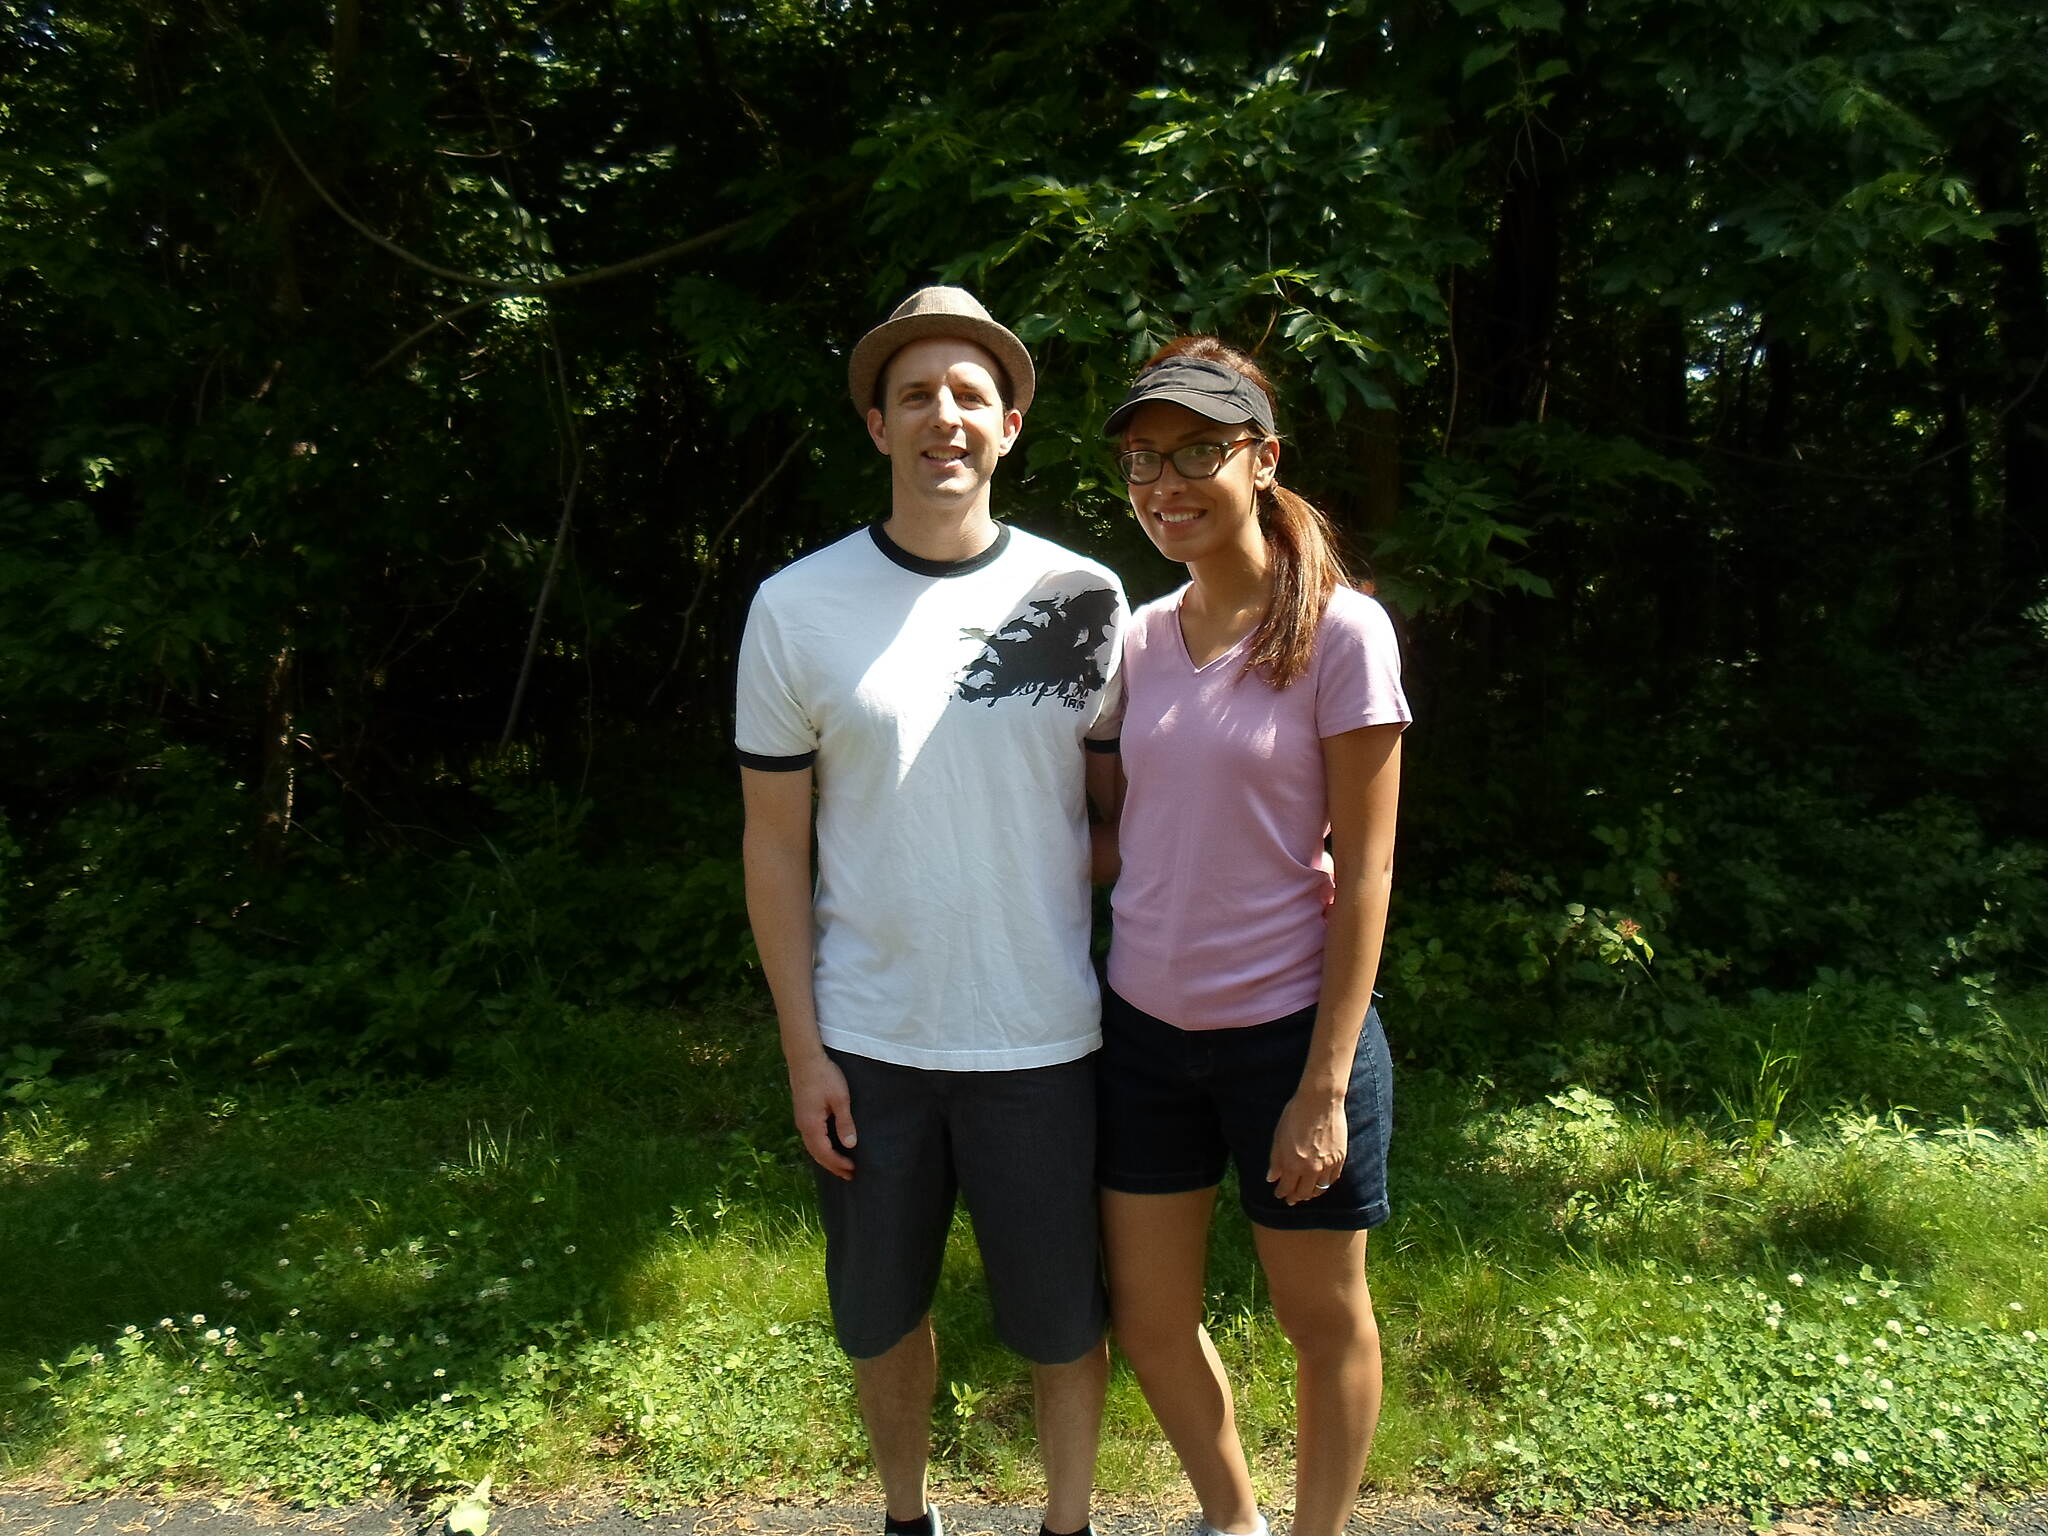 Chester Valley Trail Chester Valley Trail Couple enjoying an early summer stroll on the trail in eastern Chester County. Taken June 2015.